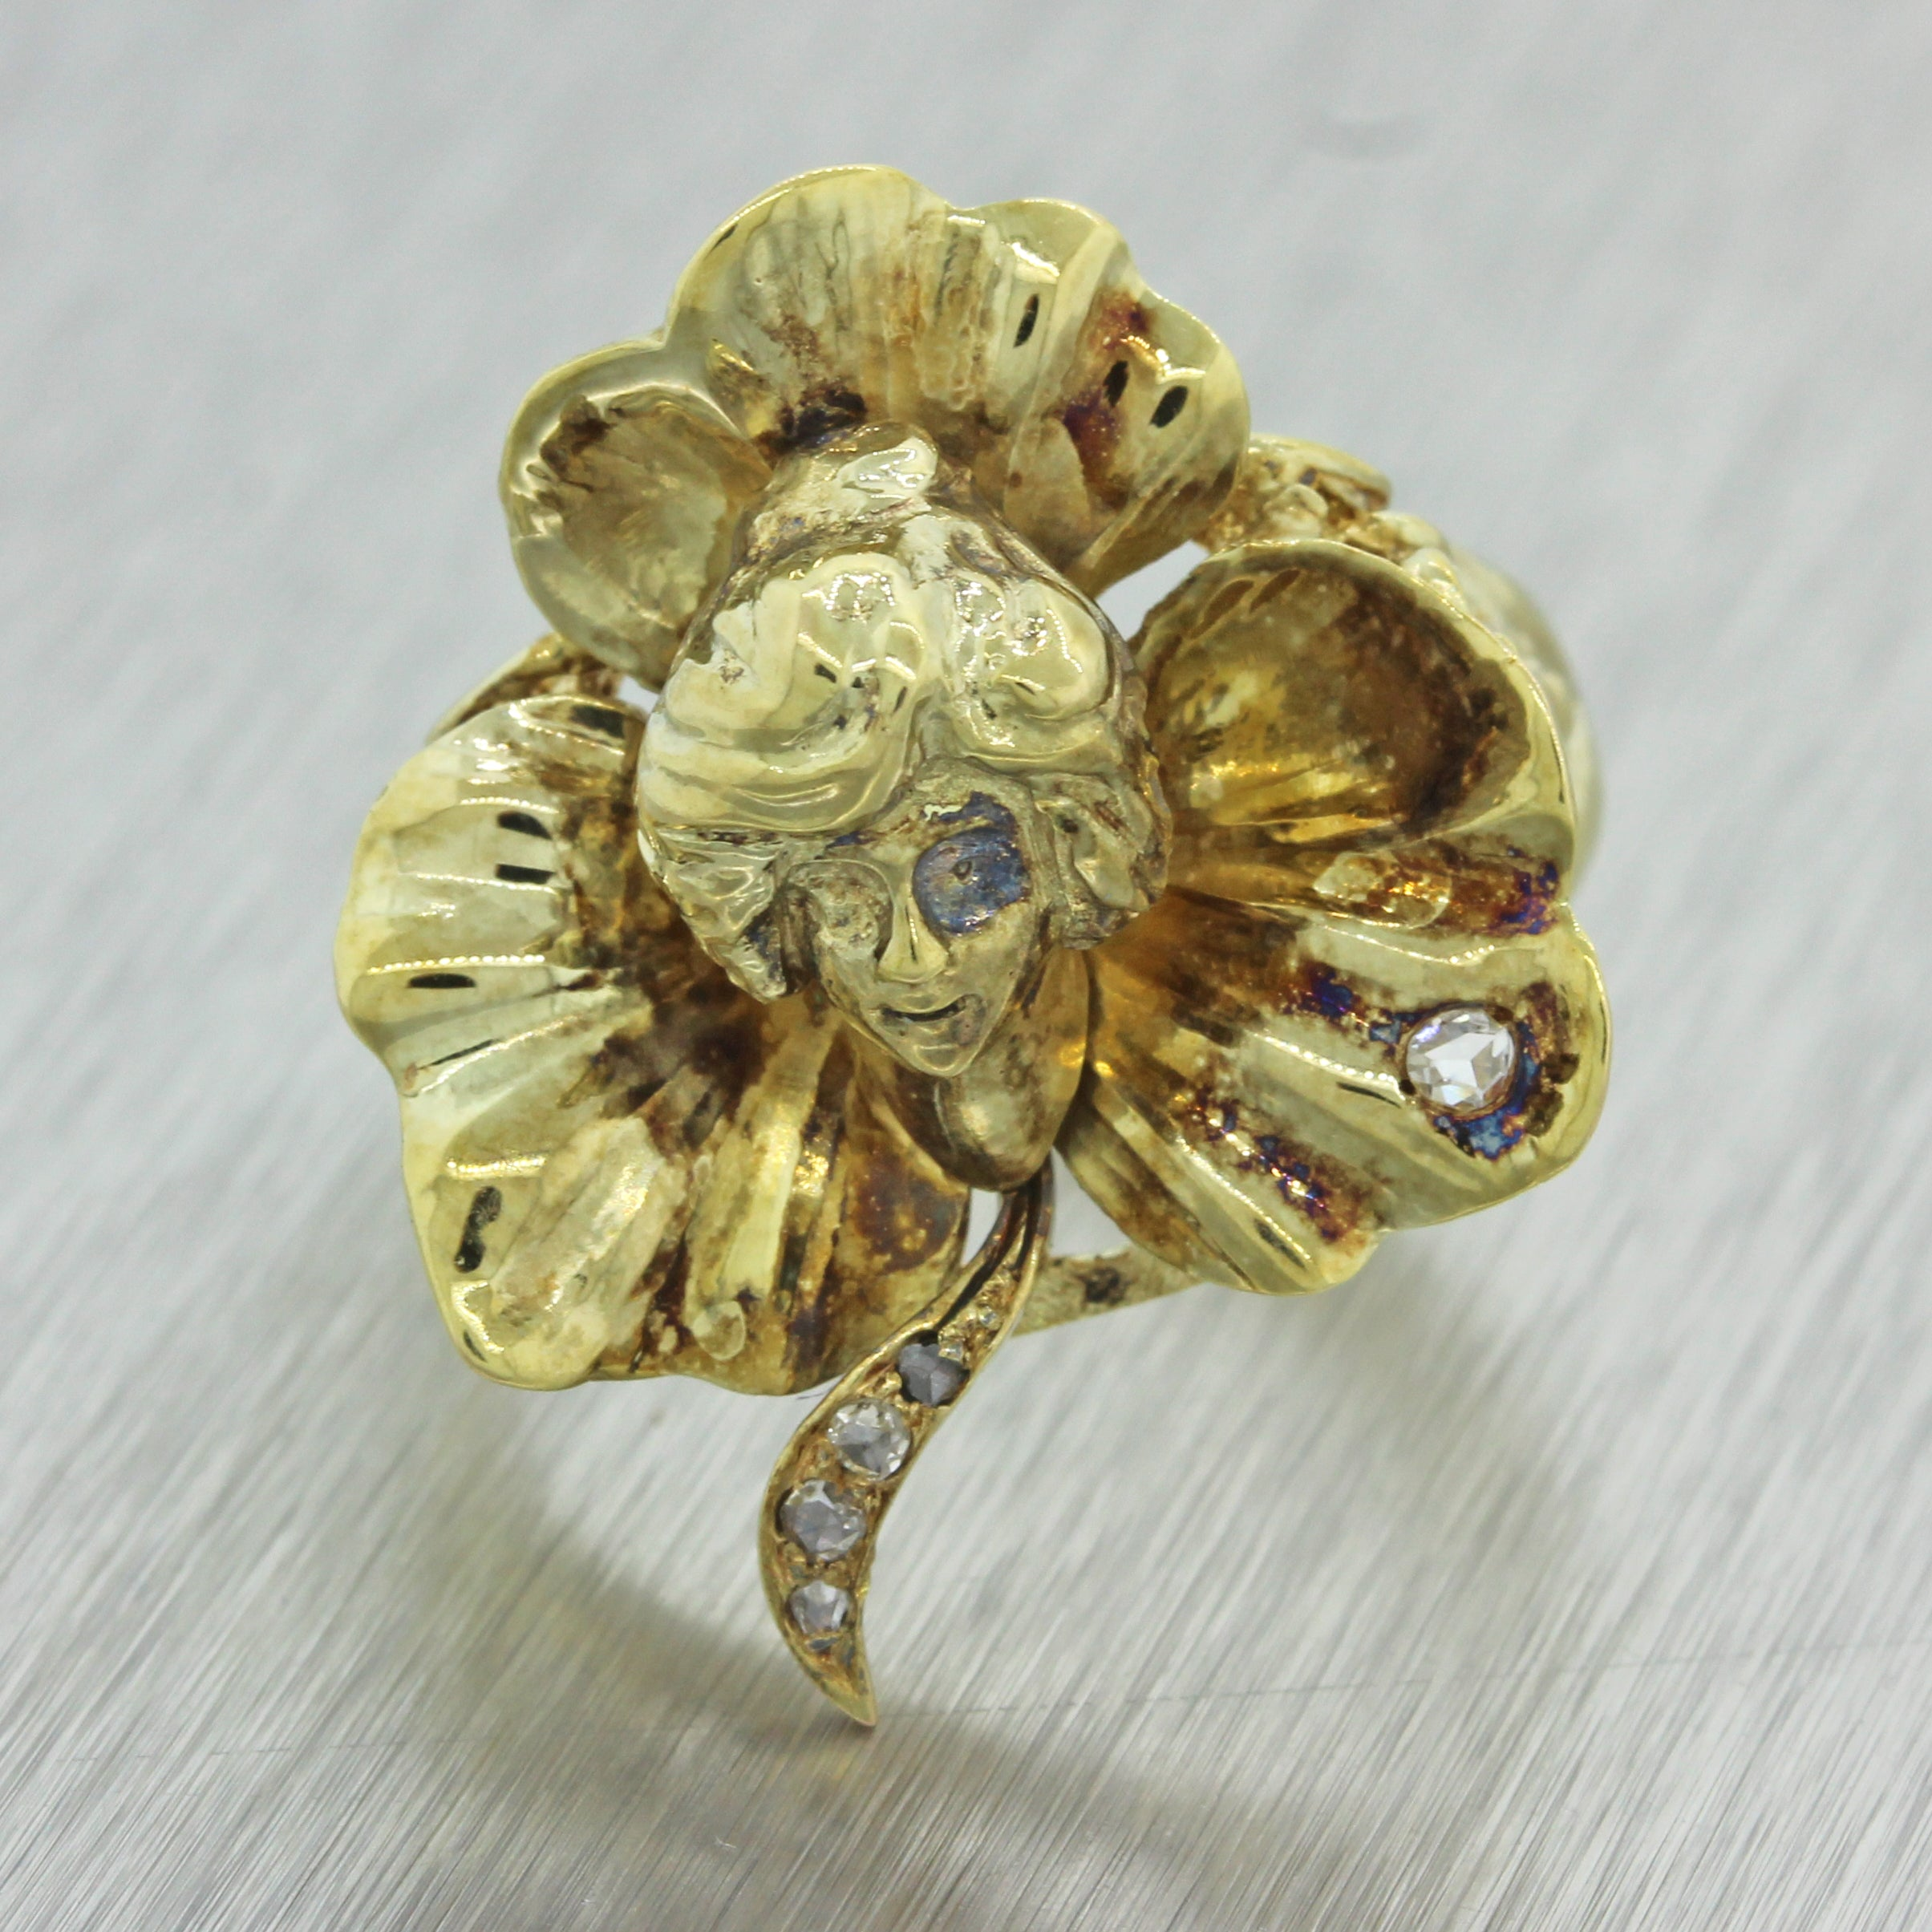 1920s Antique Art Nouveau 14k Solid Yellow Gold Diamond Shamrock Lady Head Ring